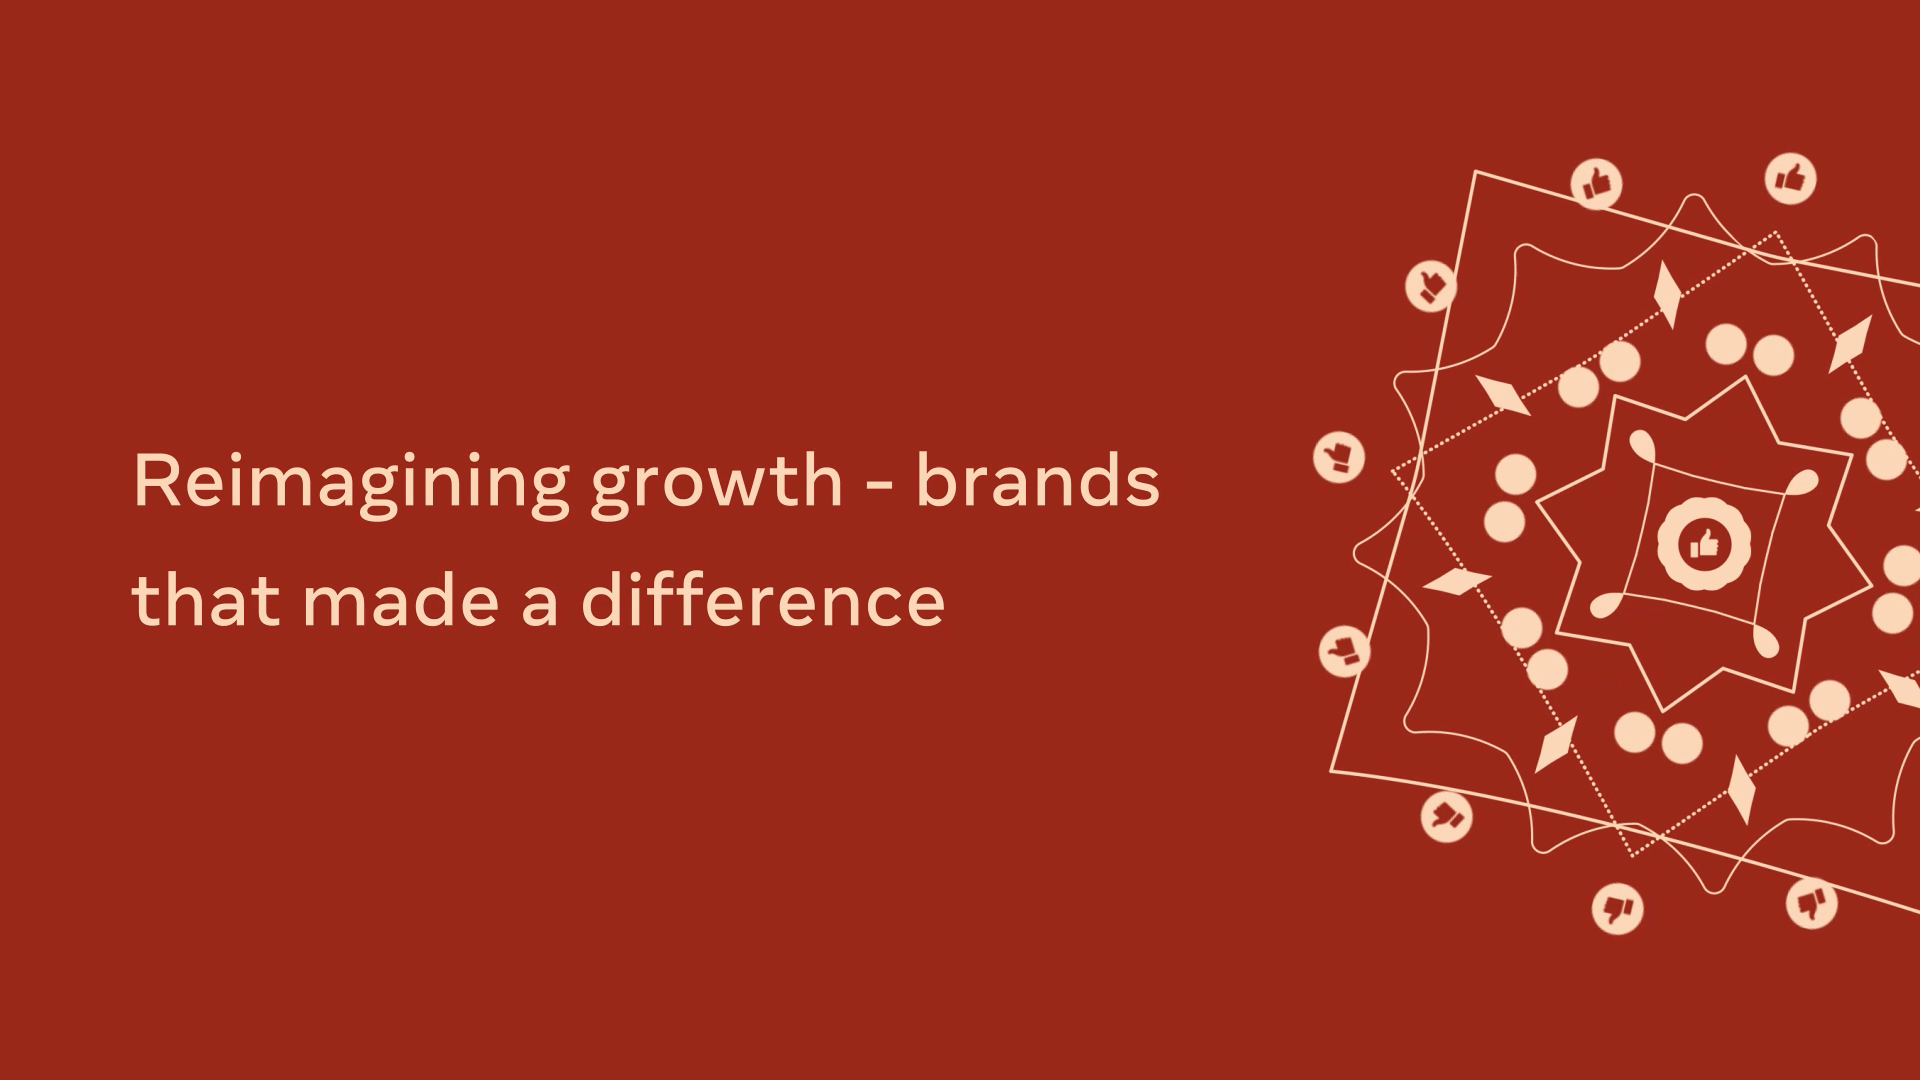 Reimagining growth - brands that made a difference